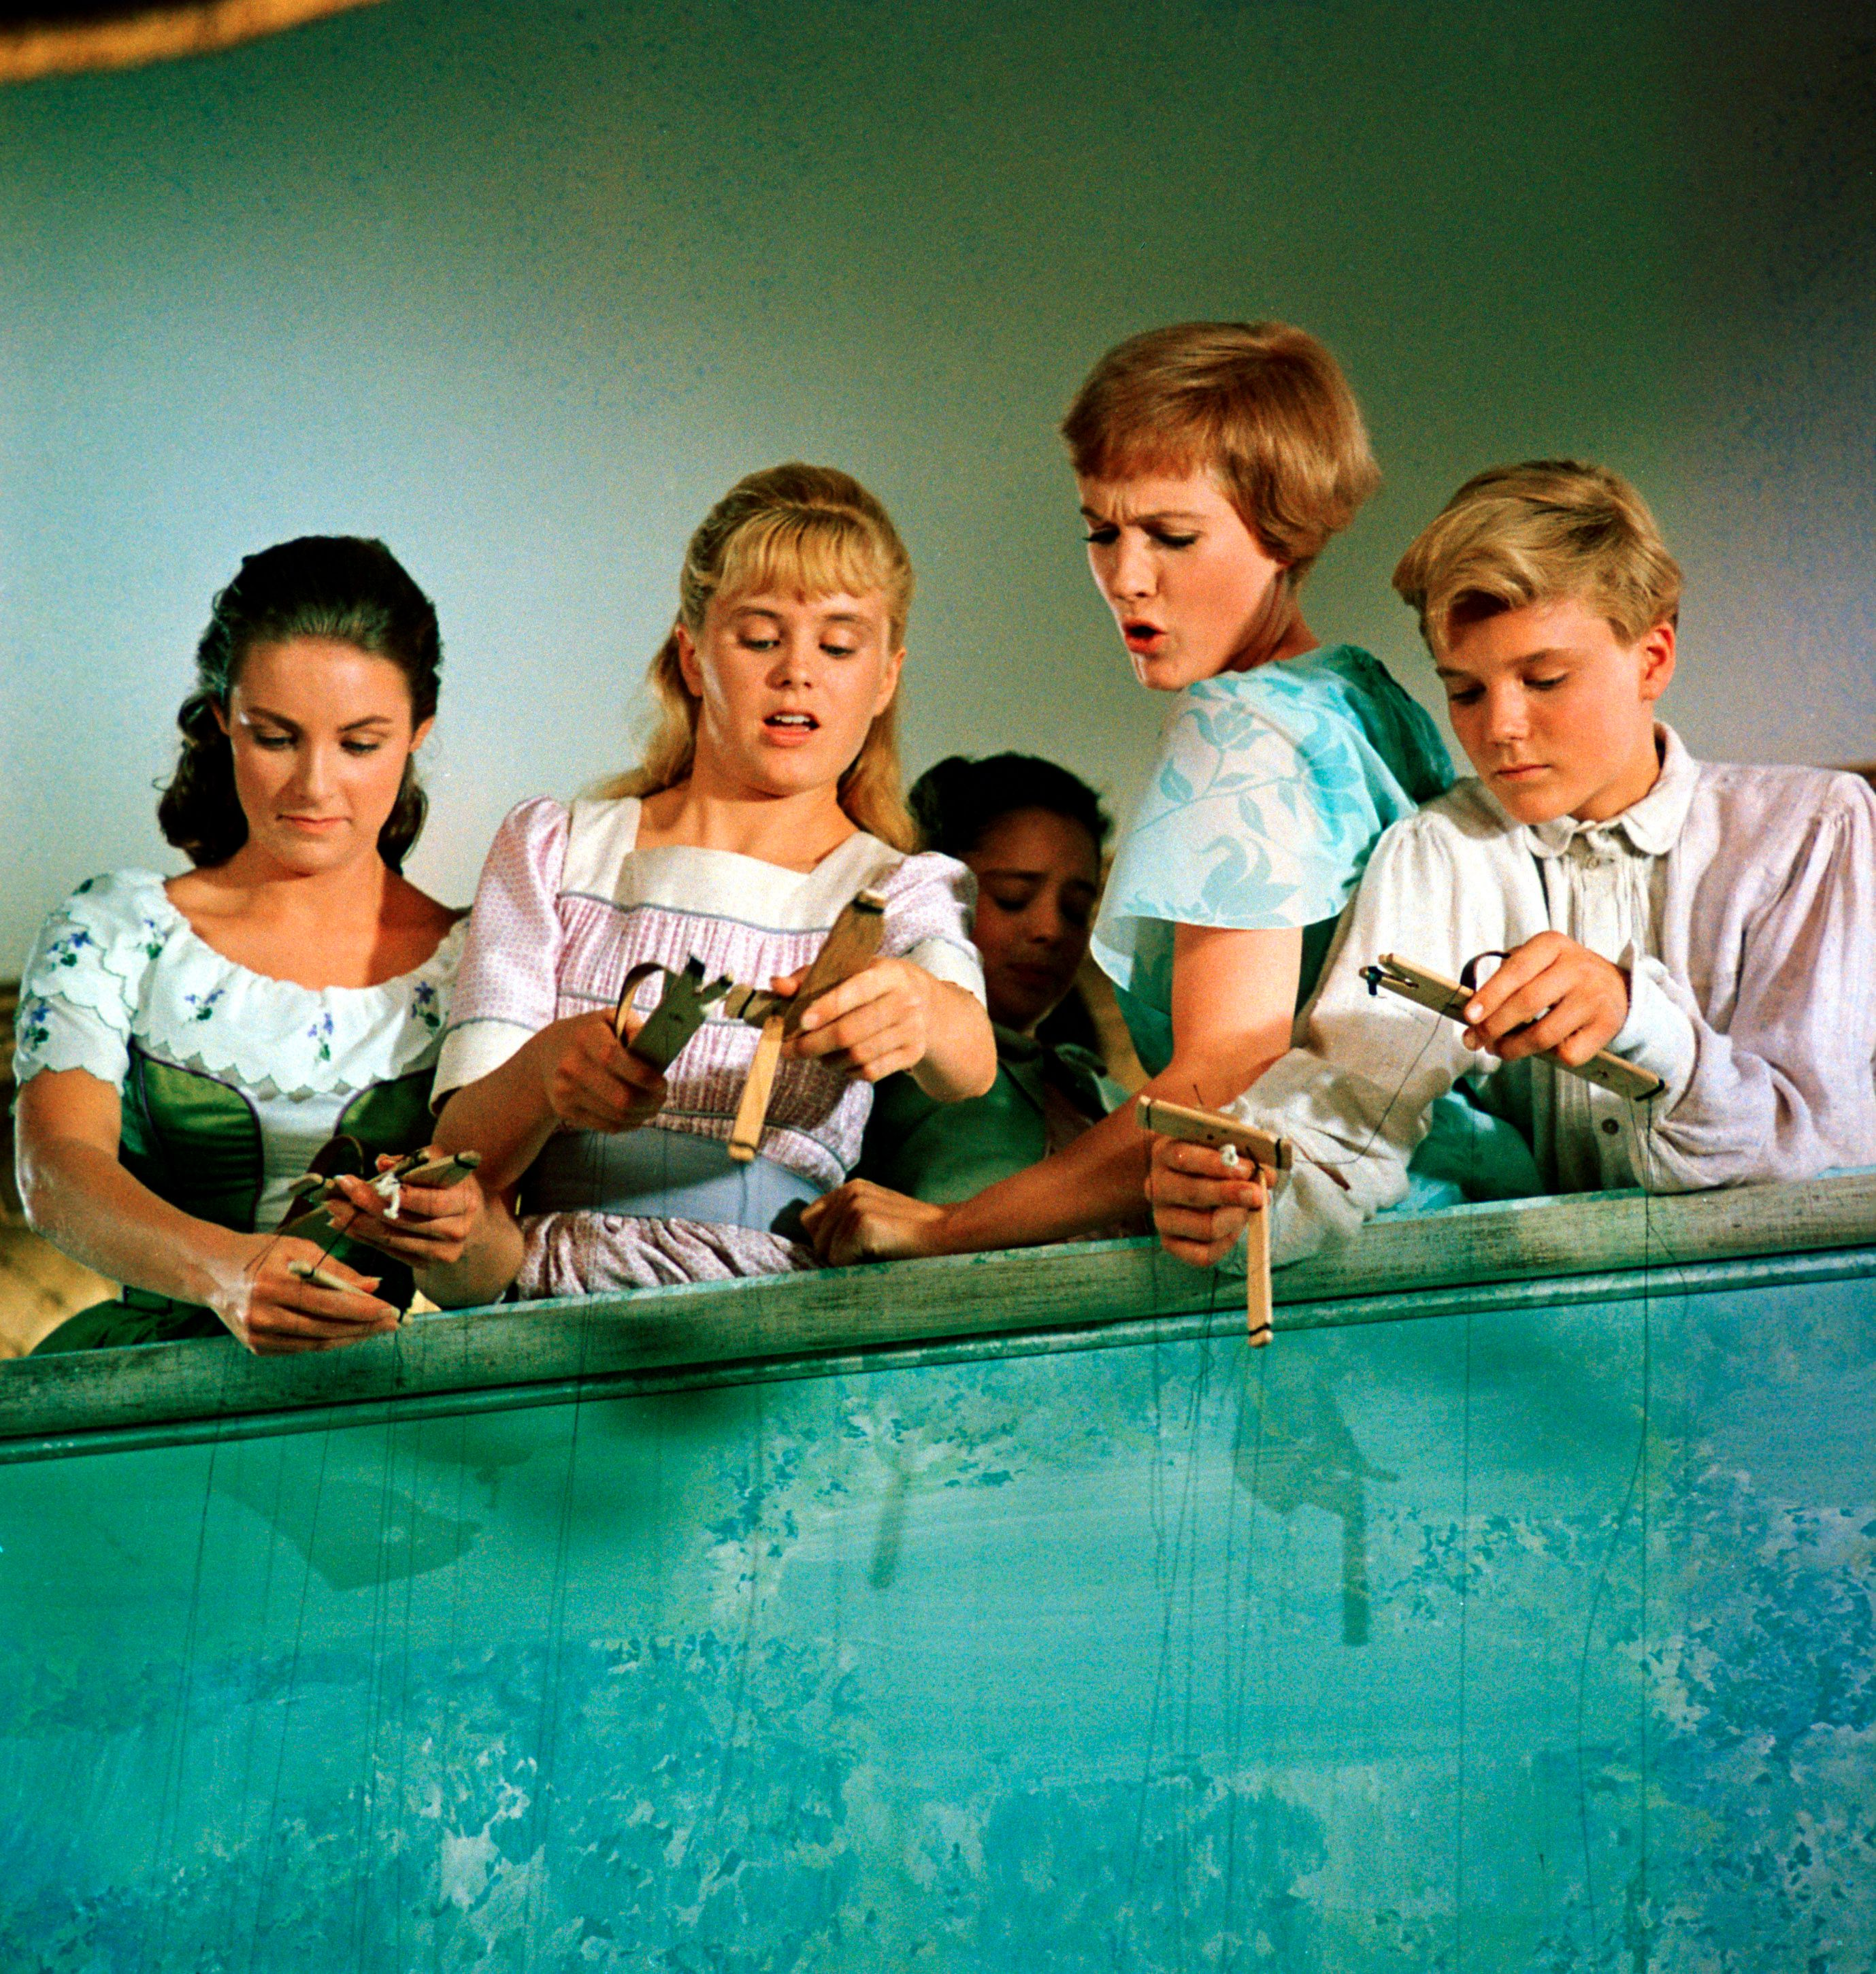 'Sound of Music' cast members mourn the death of Heather Menzies-Urich, who played Louisa